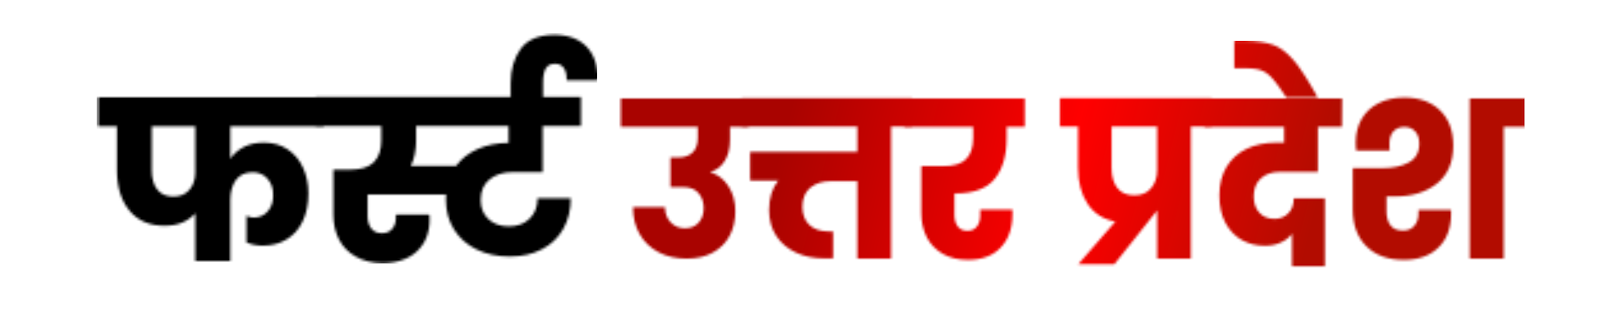 First Uttar Pradesh News